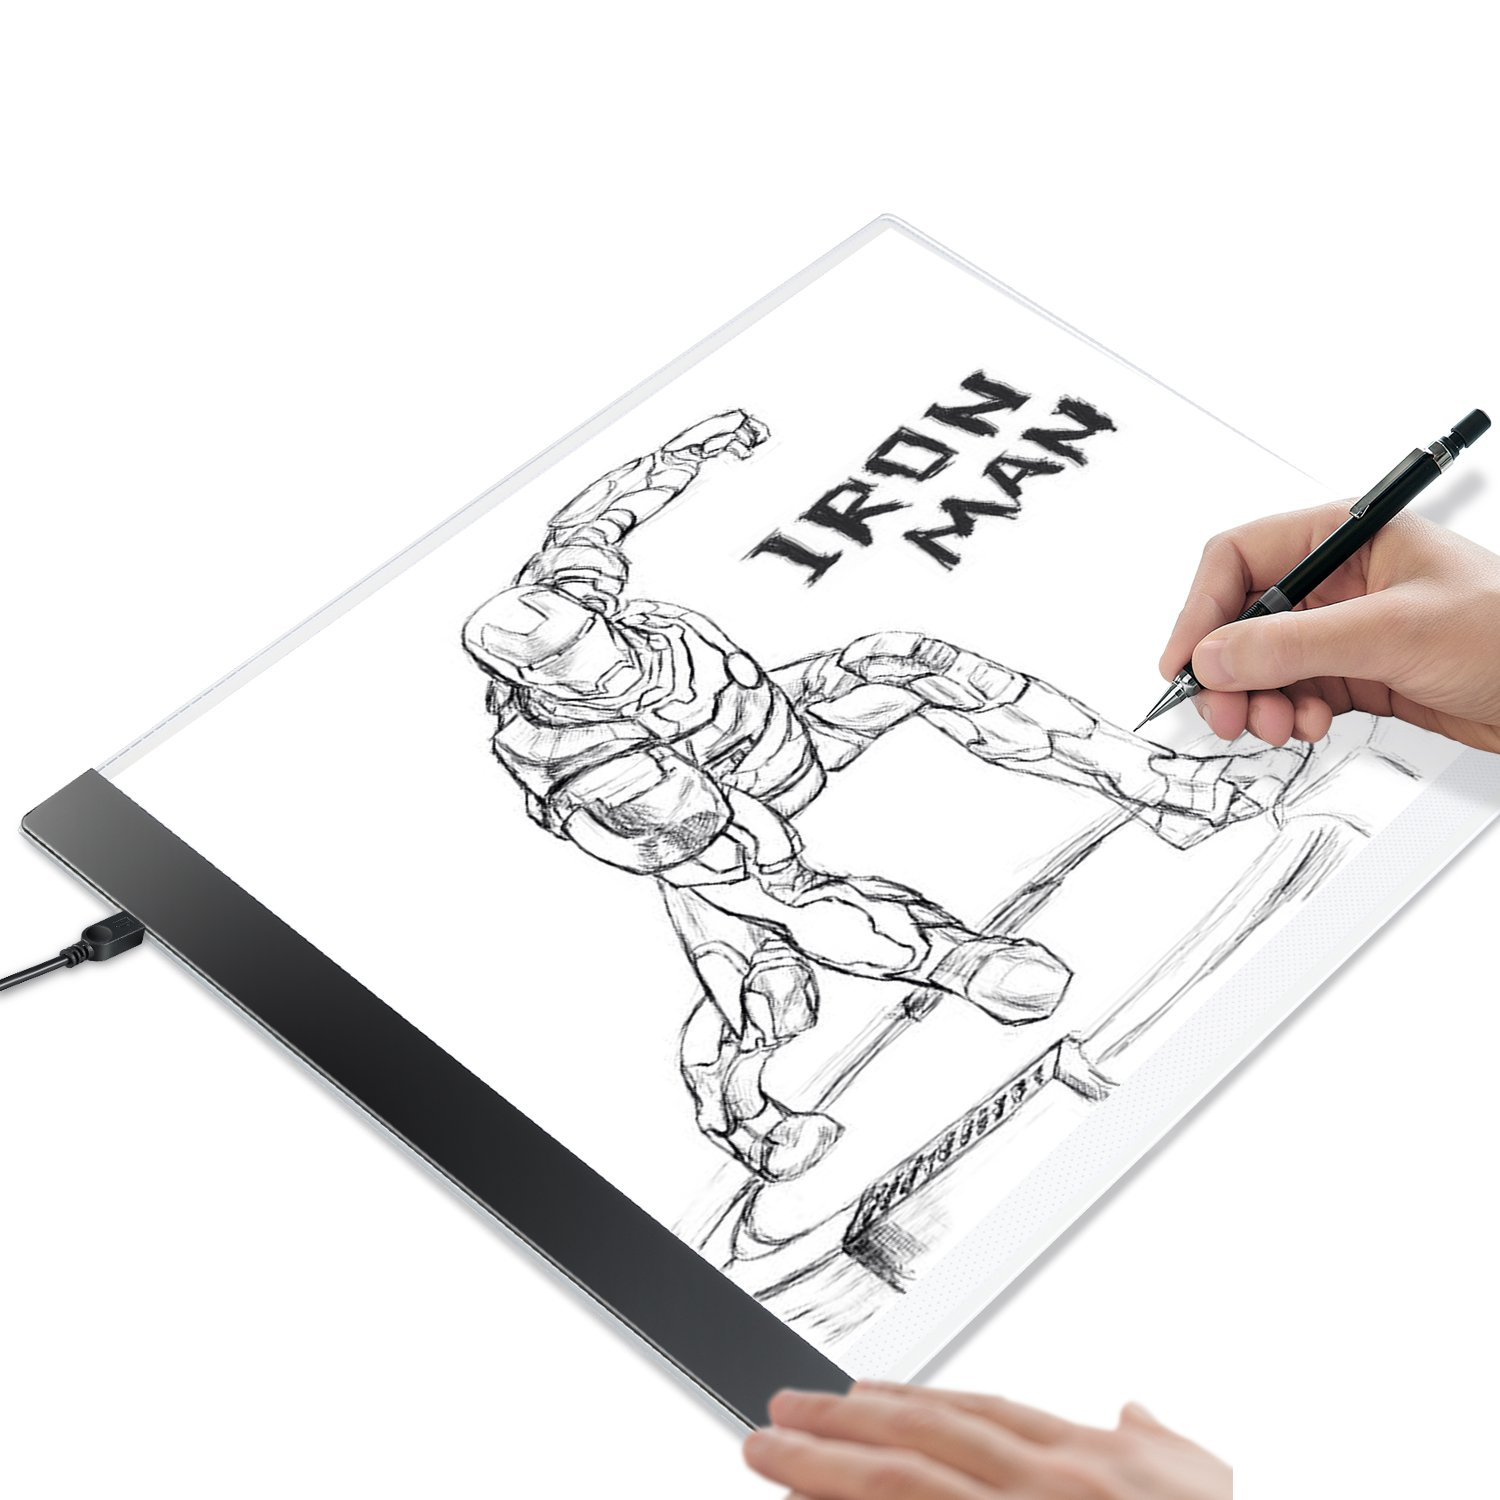 Kohree A4 LED Tracing Light Box Tracer Portable Artists Drawing Board Copyboard USB Power Cable Artcraft Tracing Light Pad for Sketching Animation Designing Stenciling X-Ray Viewing 4336950954